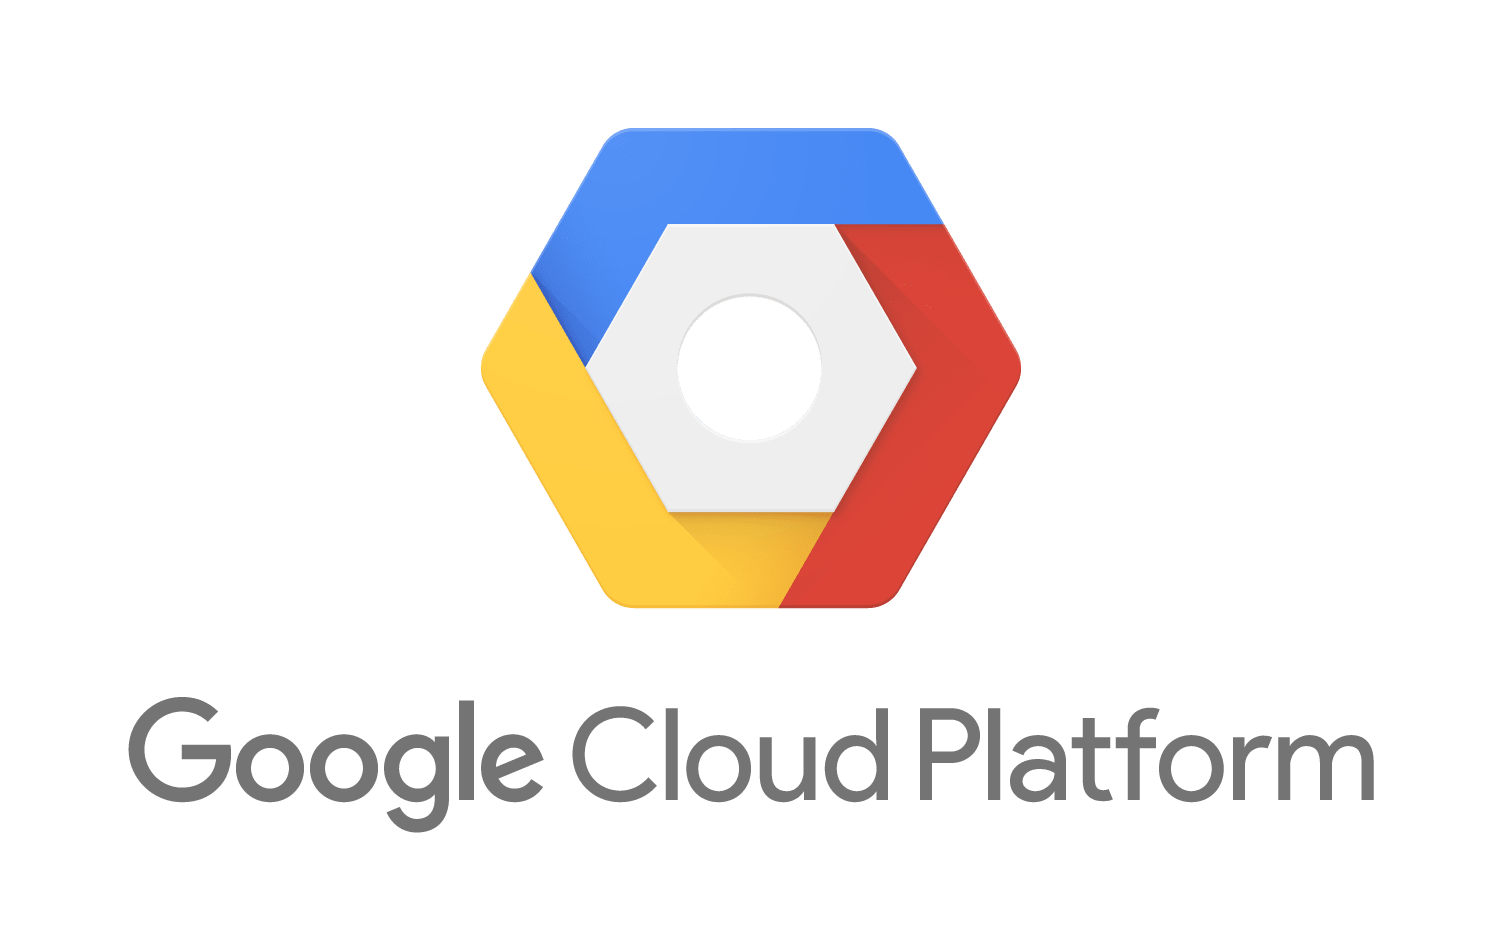 gmcneish : I will teach you to connect to google cloud with ssh keys for  $30 on www fiverr com